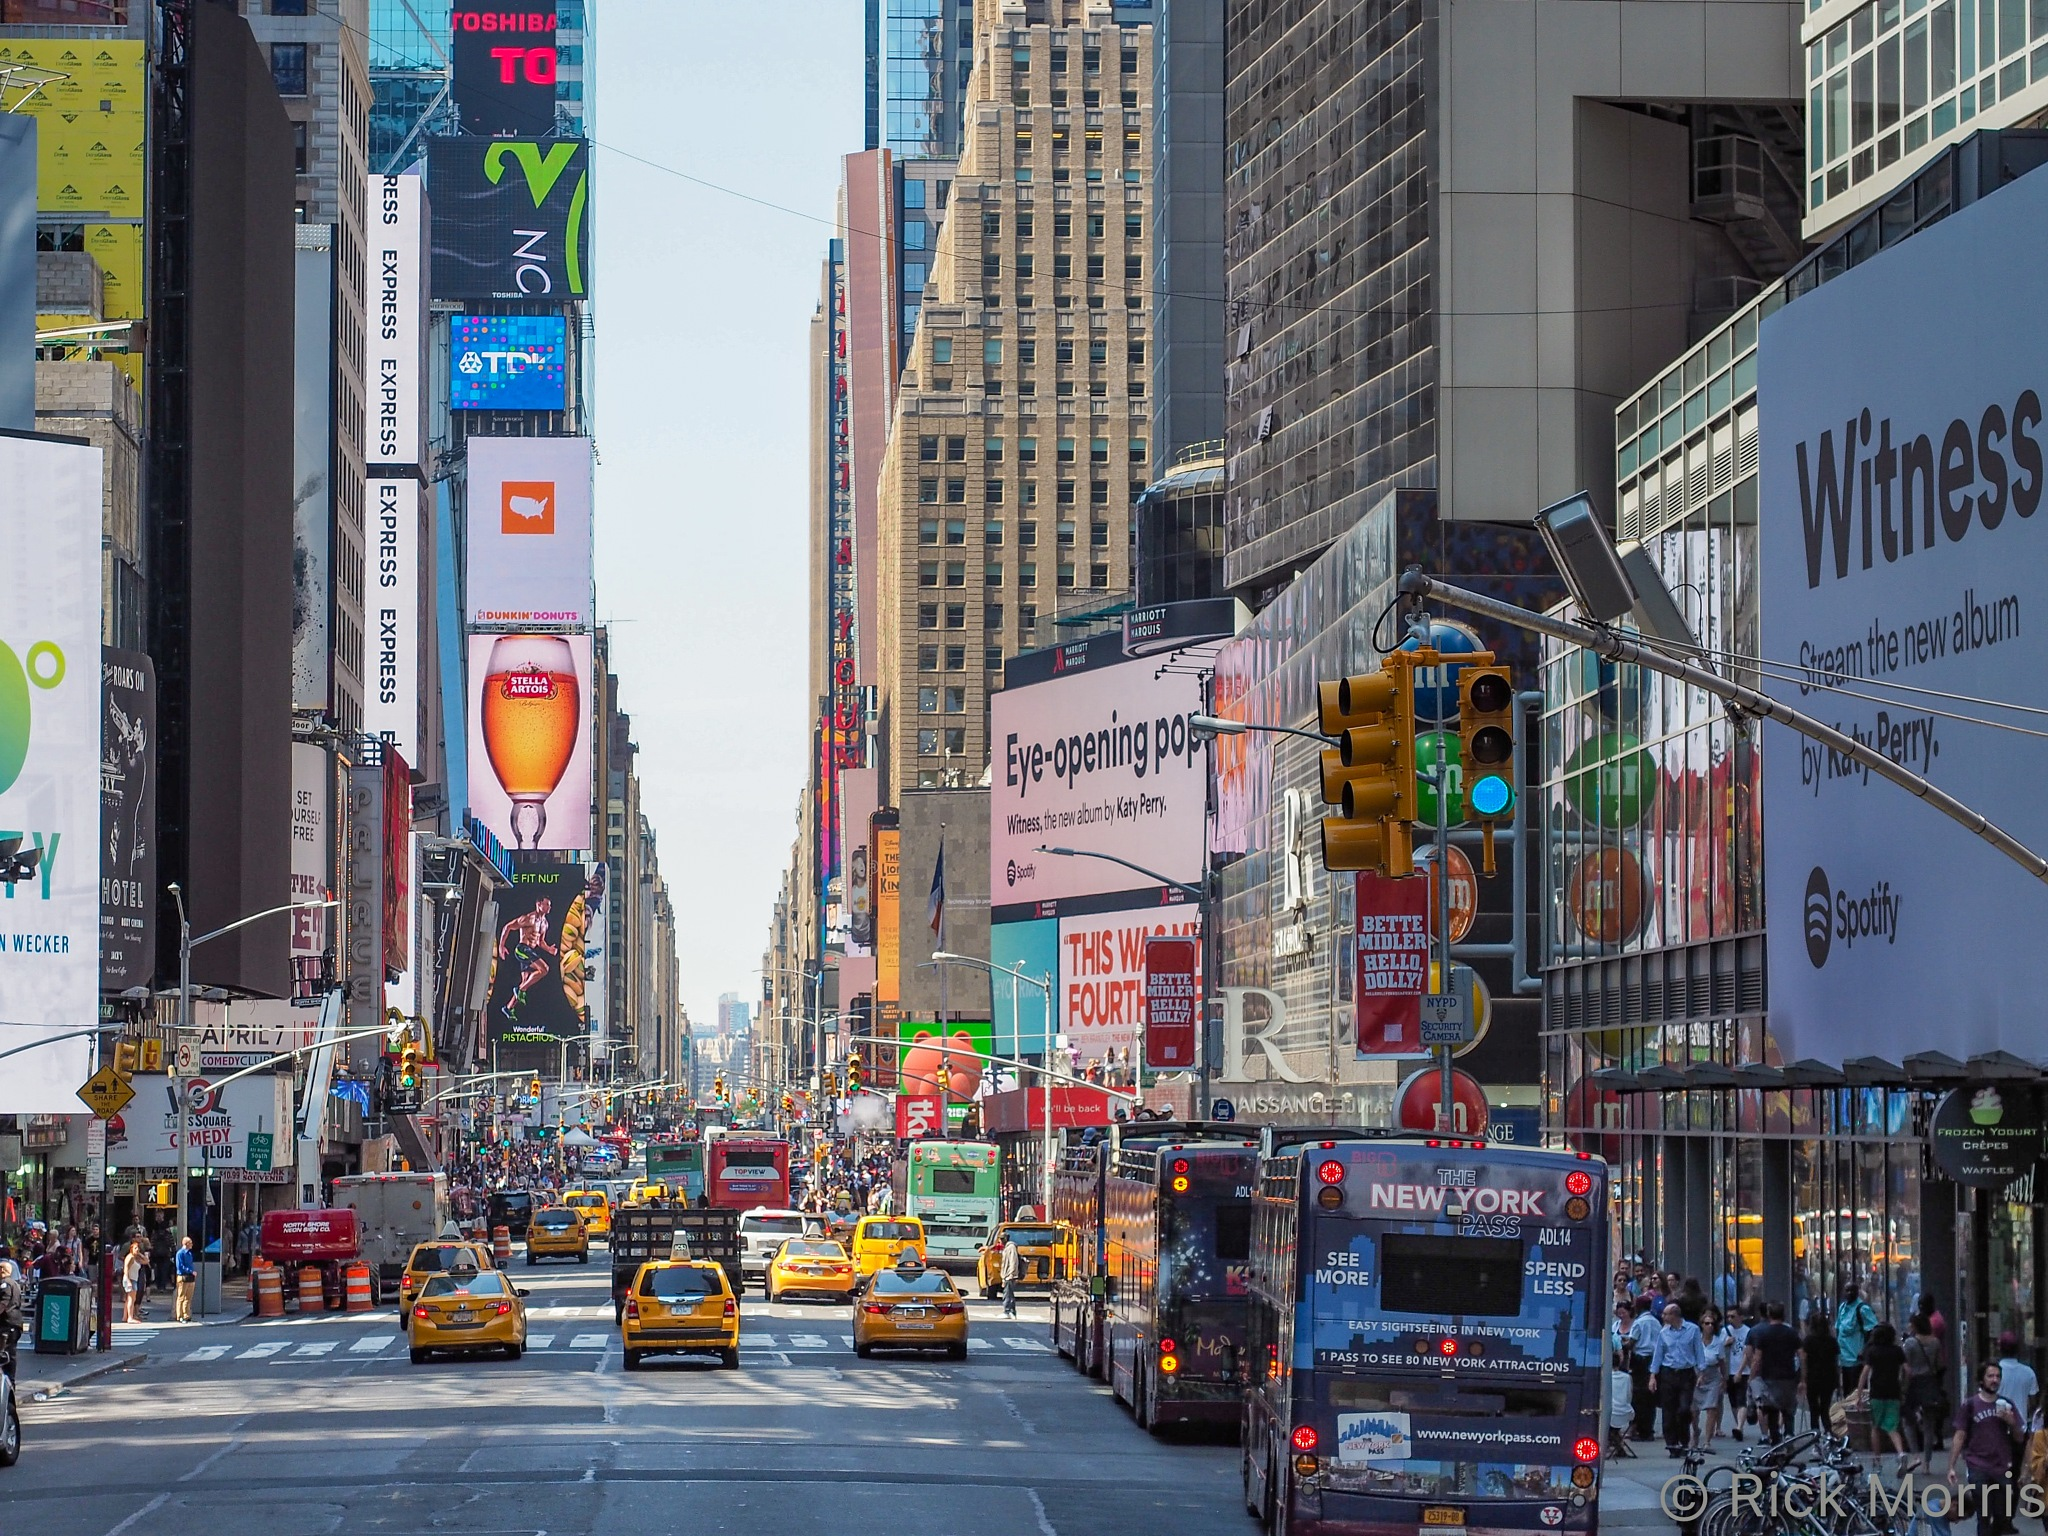 7th Ave - New York City by Rick Morris